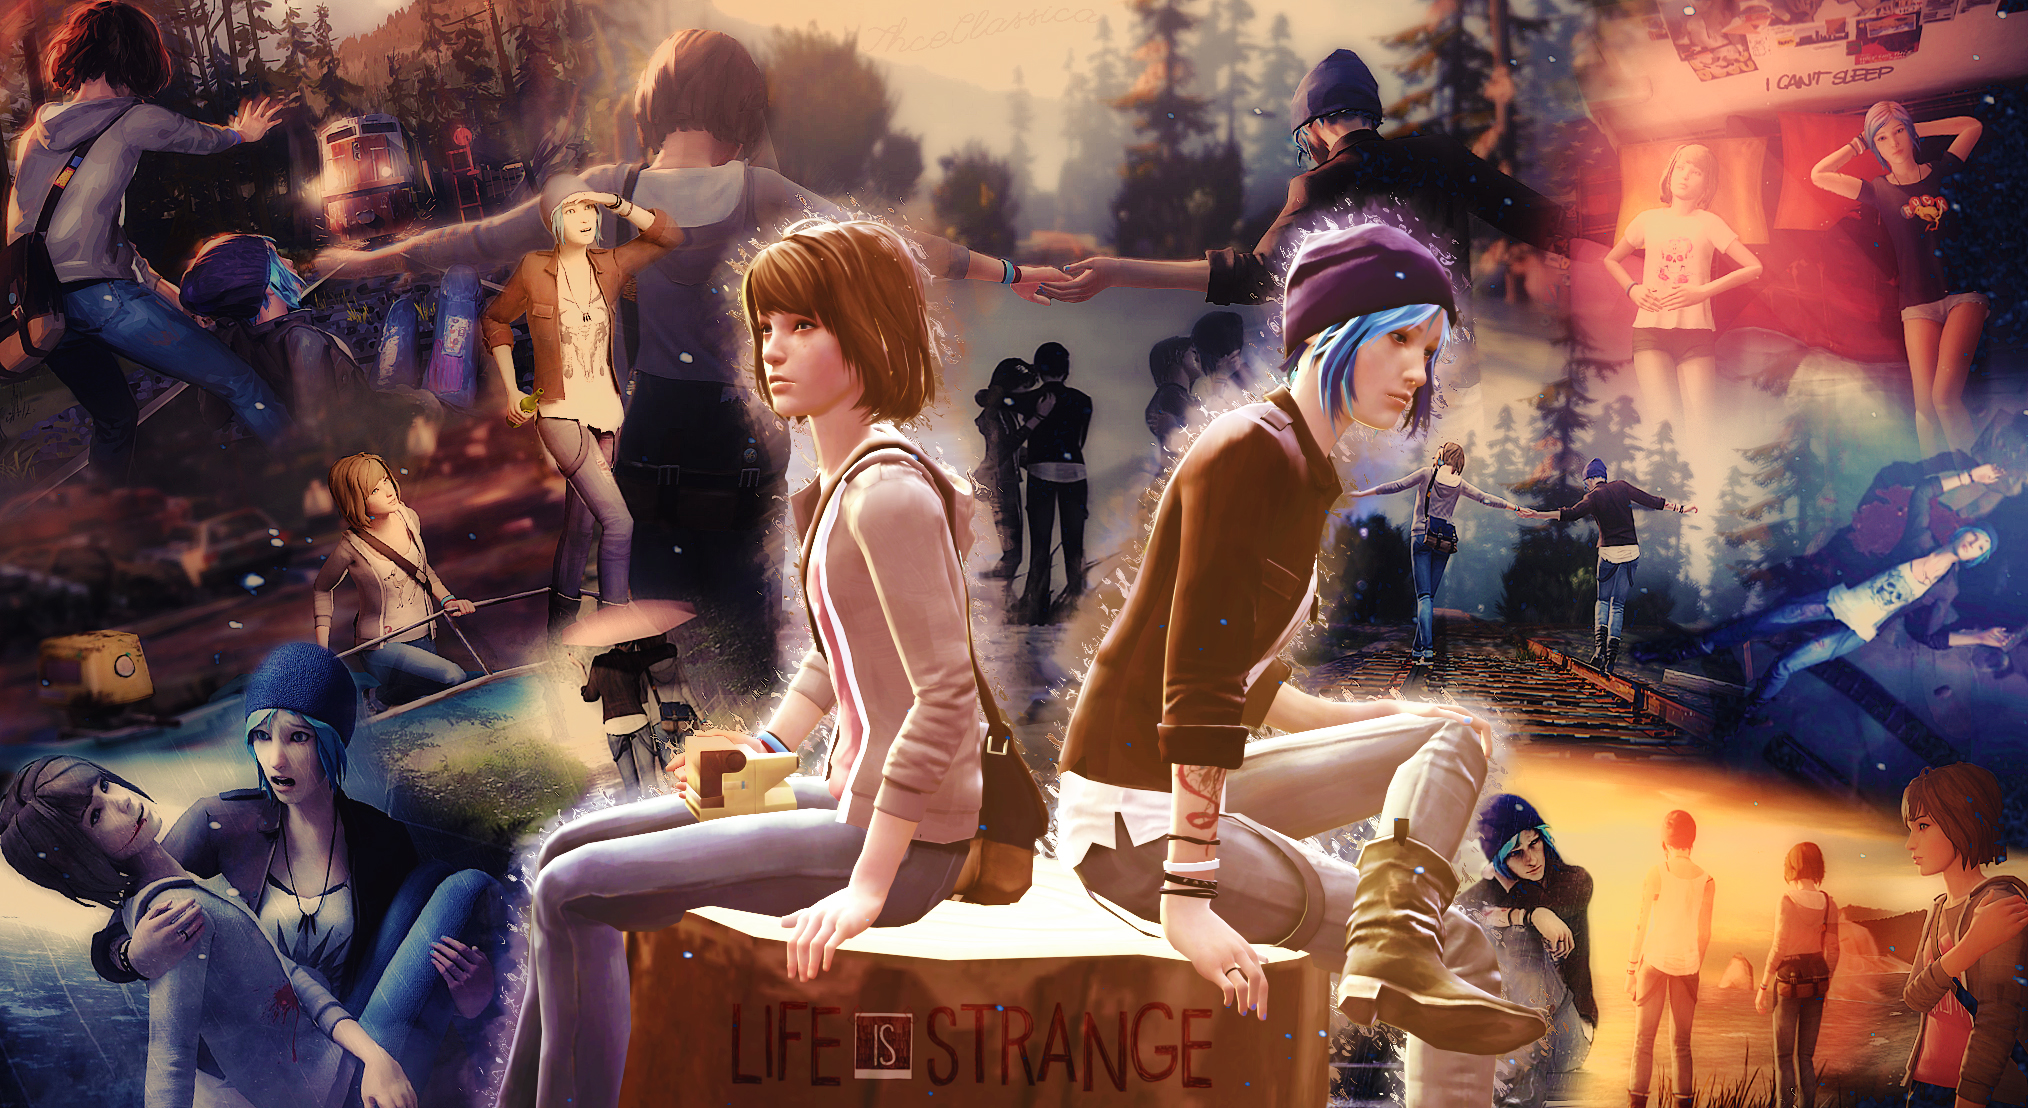 Life Is Strange Mixed Scenes Hd Wallpaper Background Image